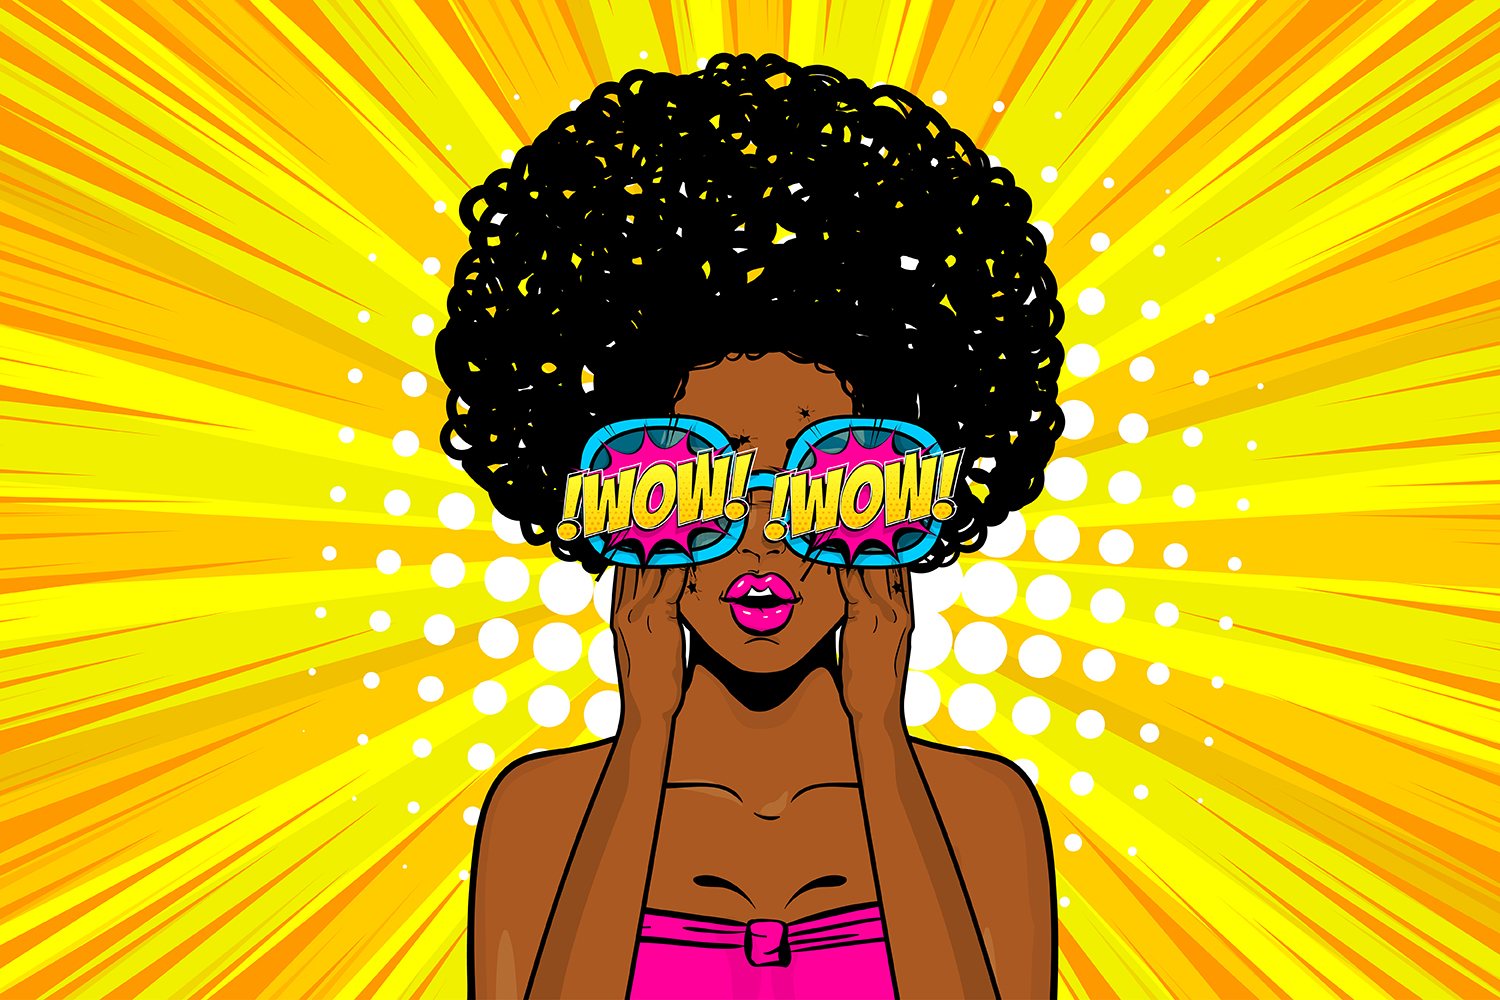 Download Free Black Woman Wow Face Pop Art In Glasses Graphic By Kapitosh for Cricut Explore, Silhouette and other cutting machines.